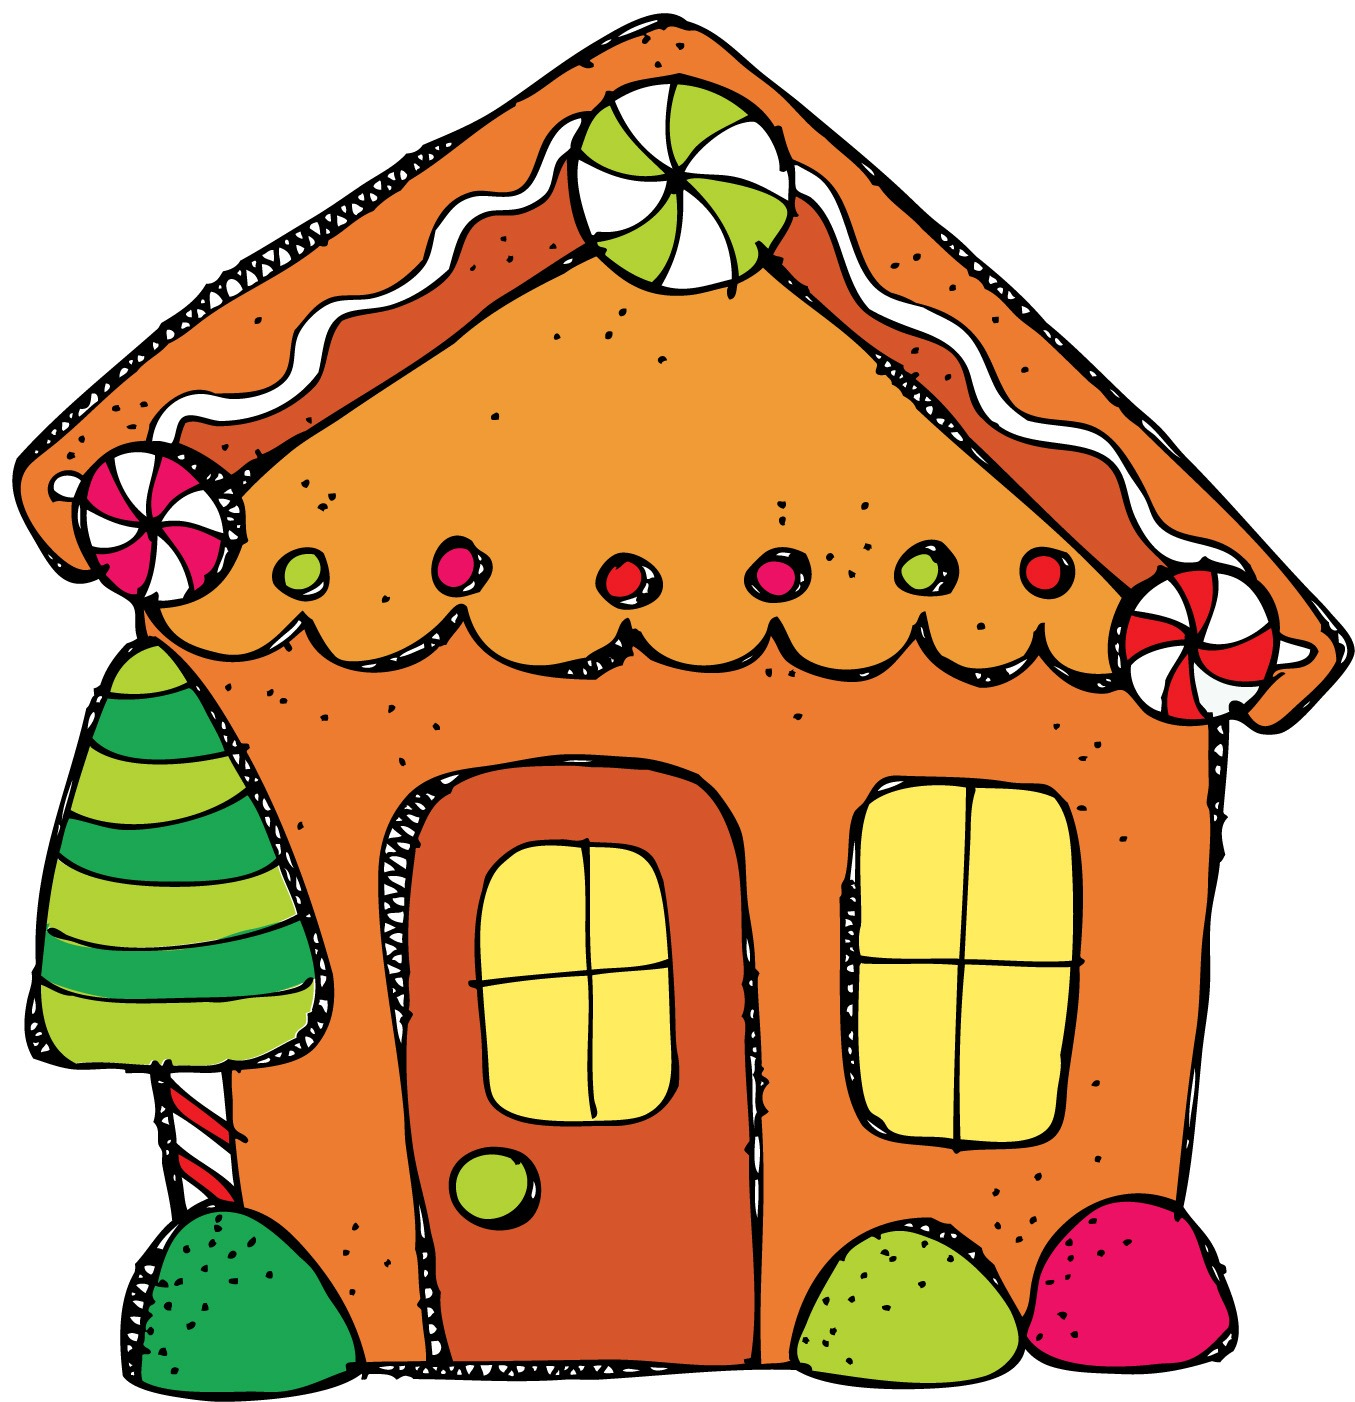 Clipart Of House Part - ClipArt Best